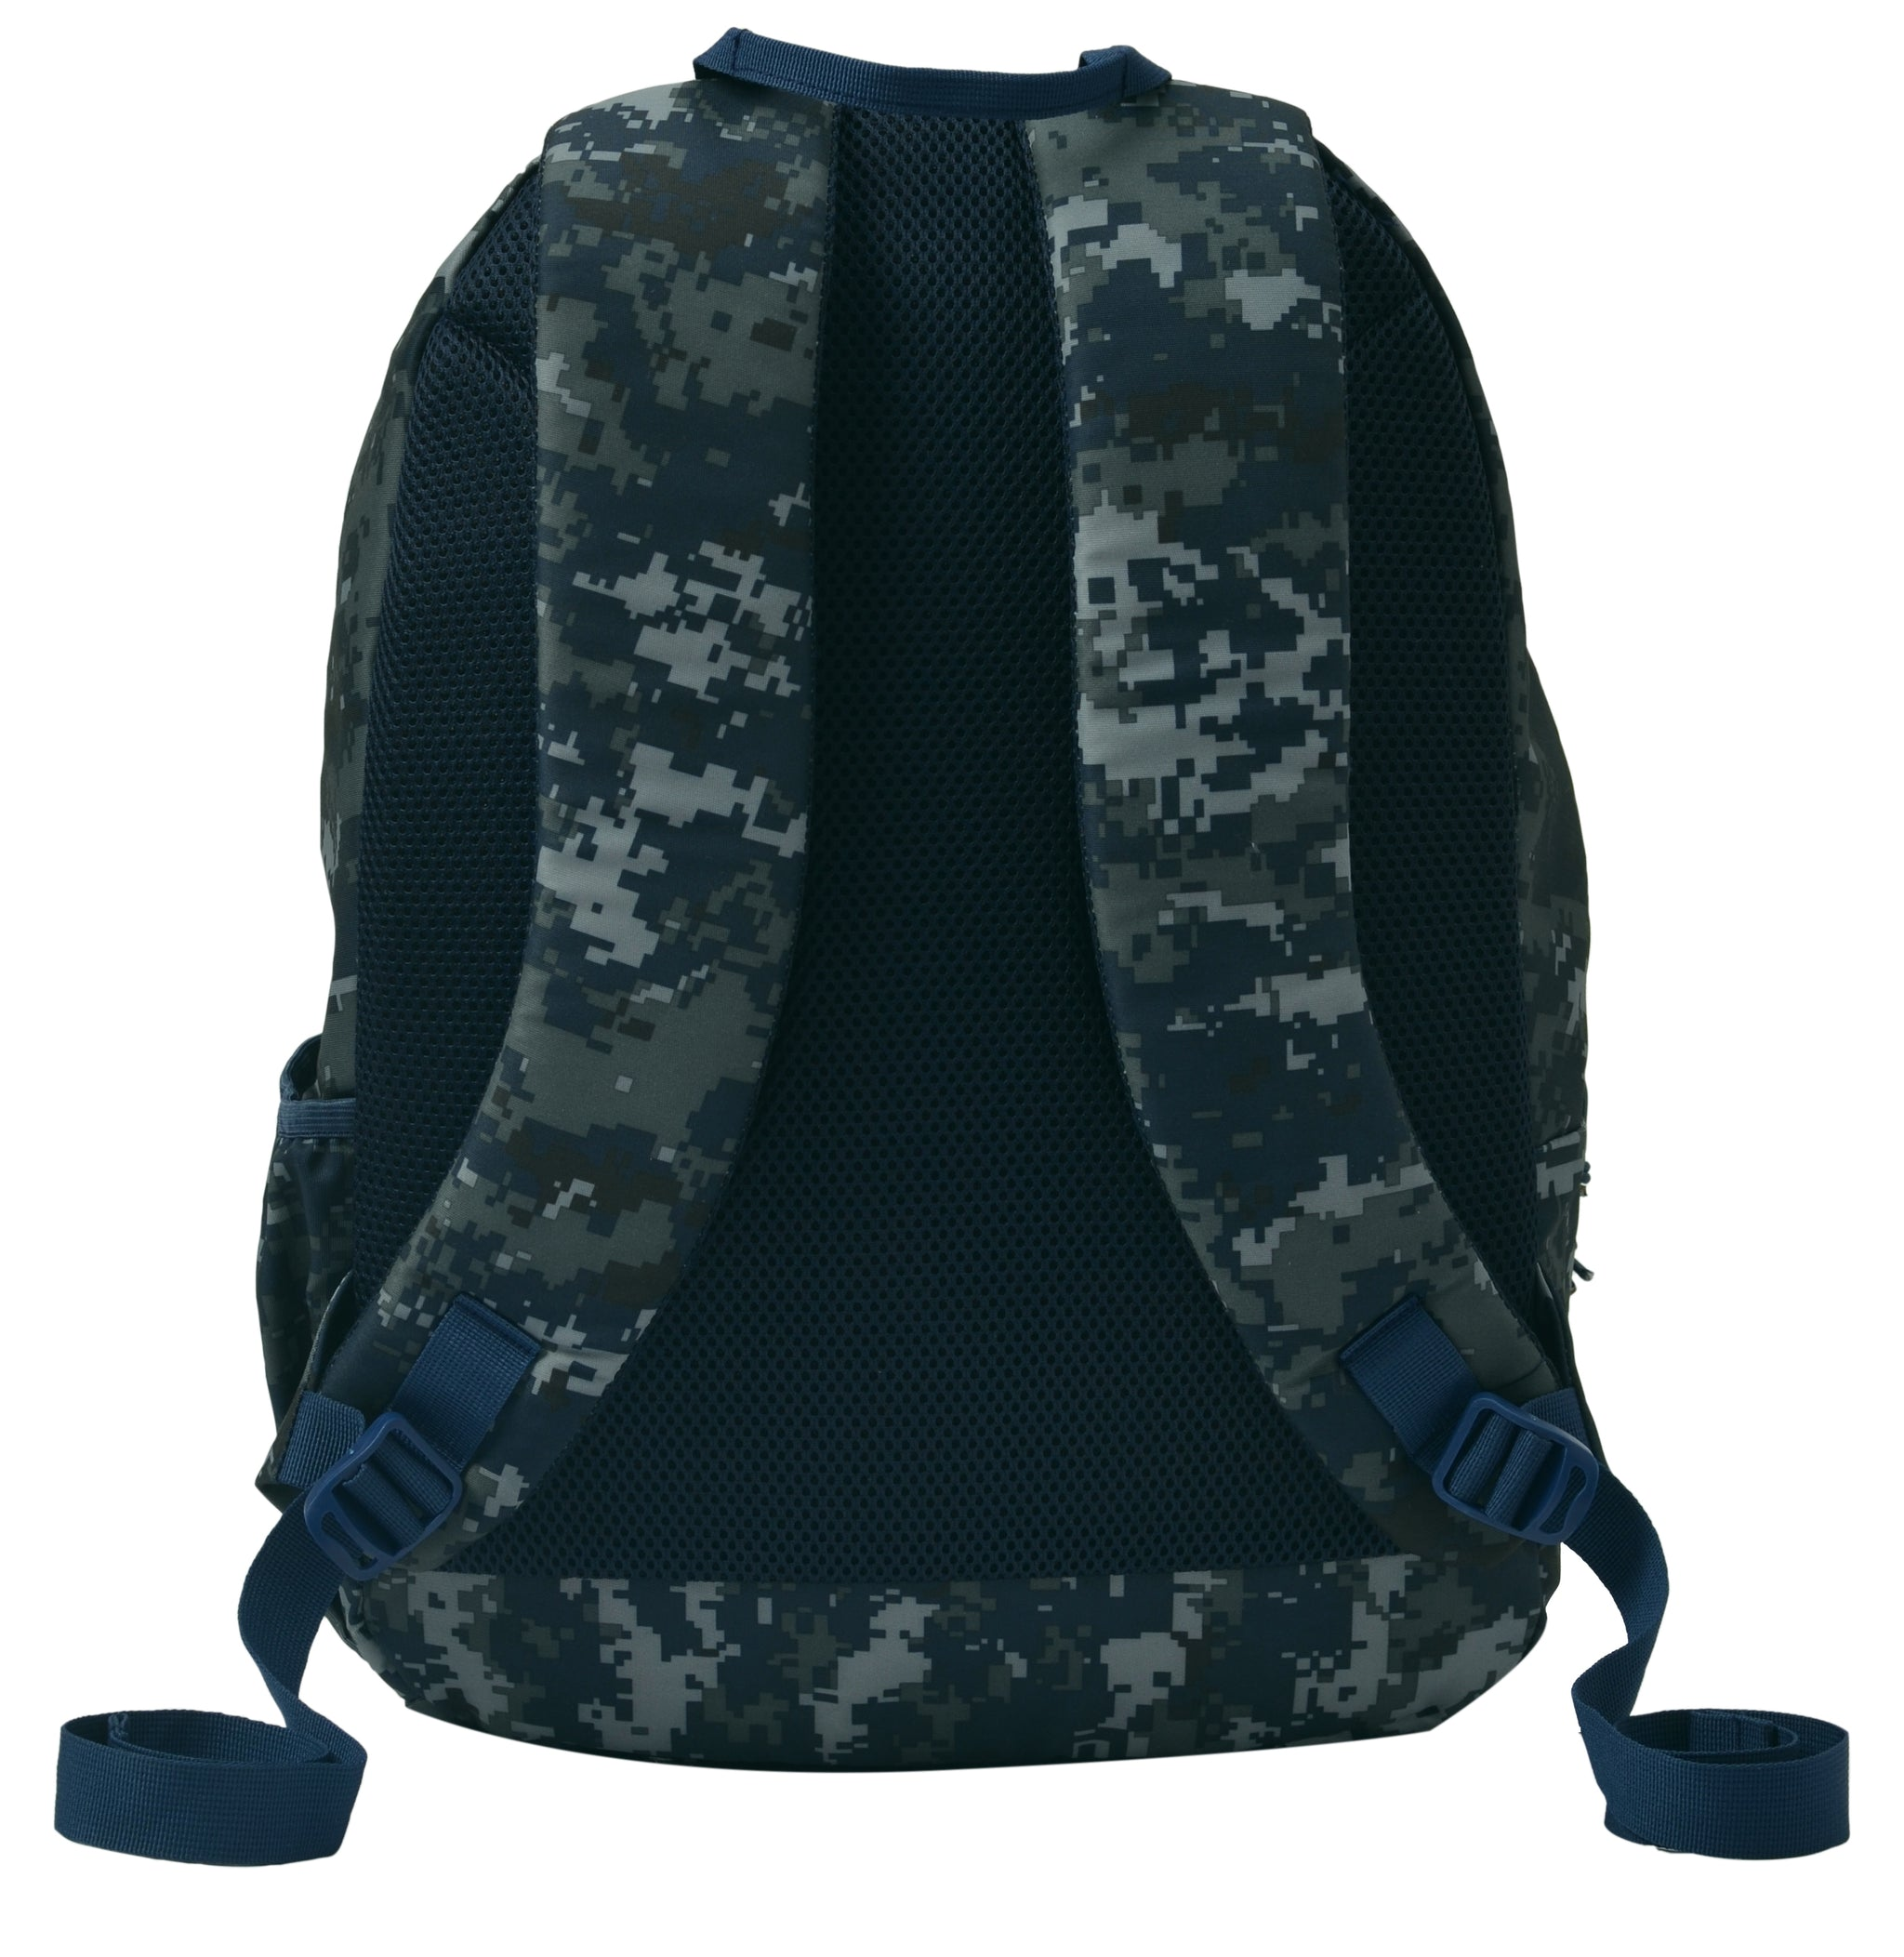 F Gear Military Crusader 30 Liter Backpack (Marpat Navy Digital Camo)